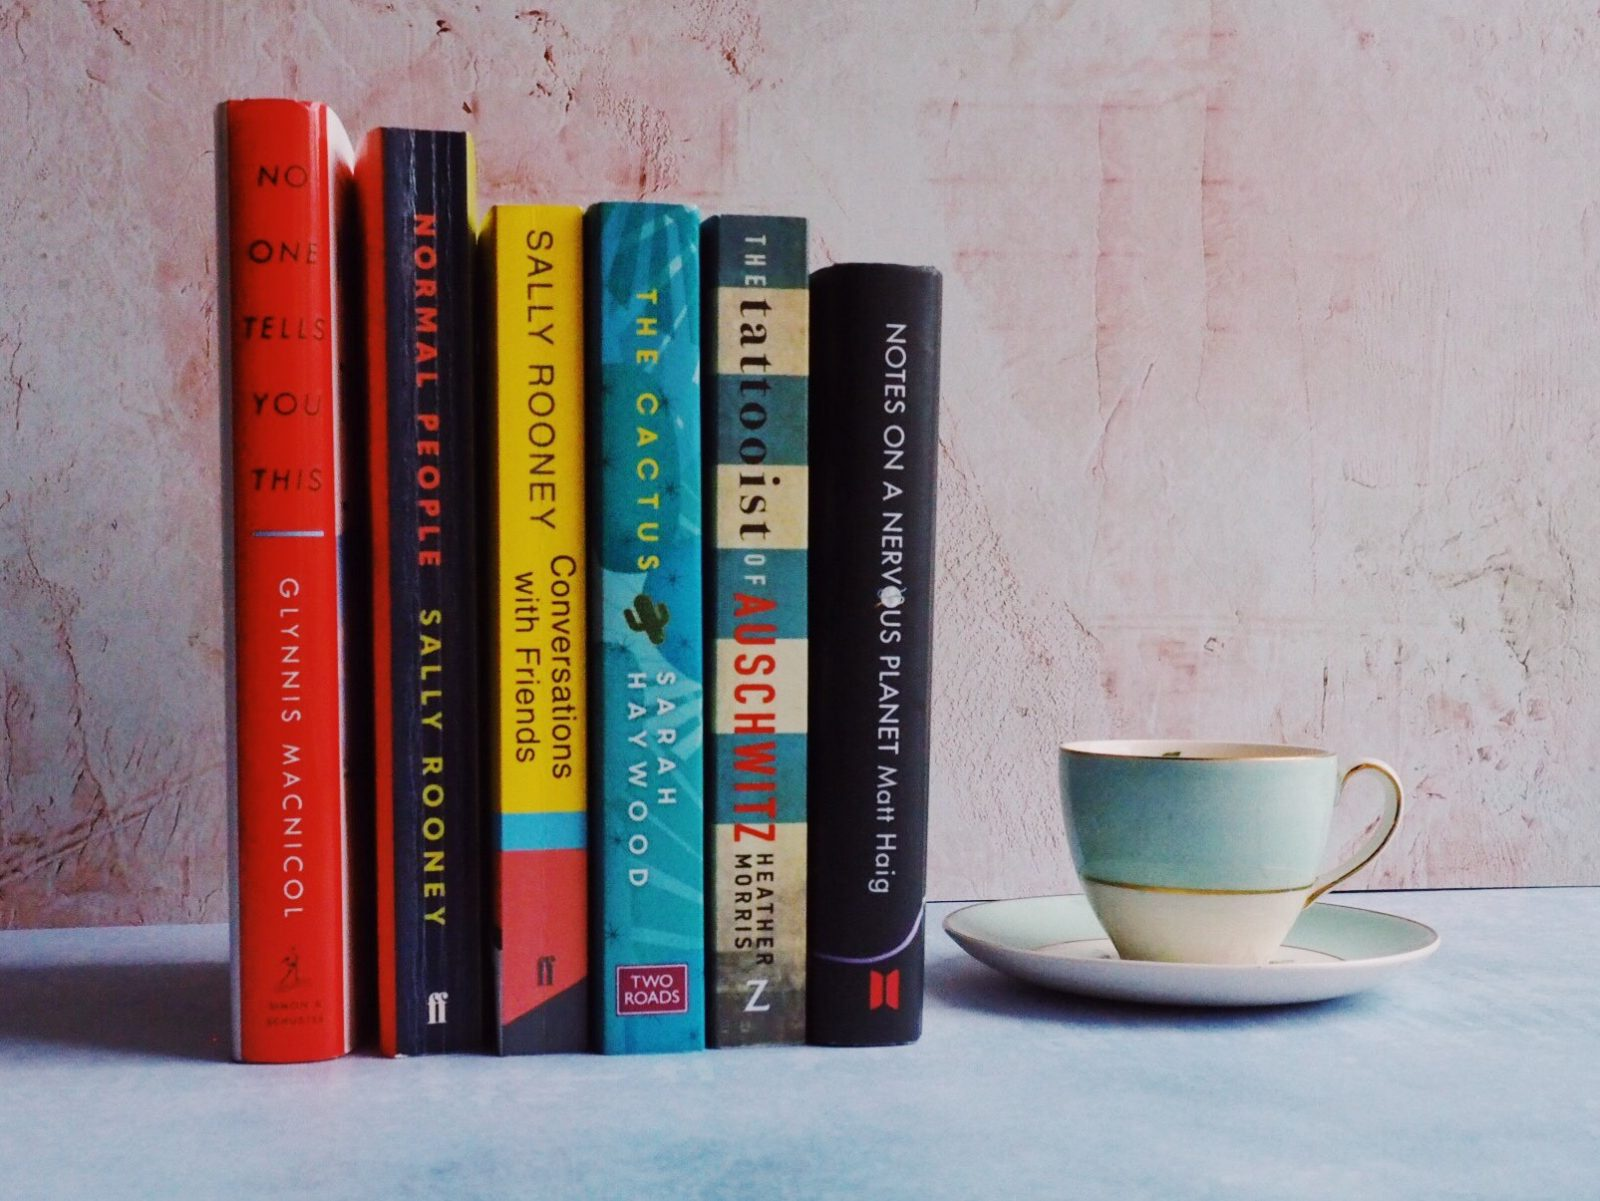 Books and a cup and saucer.